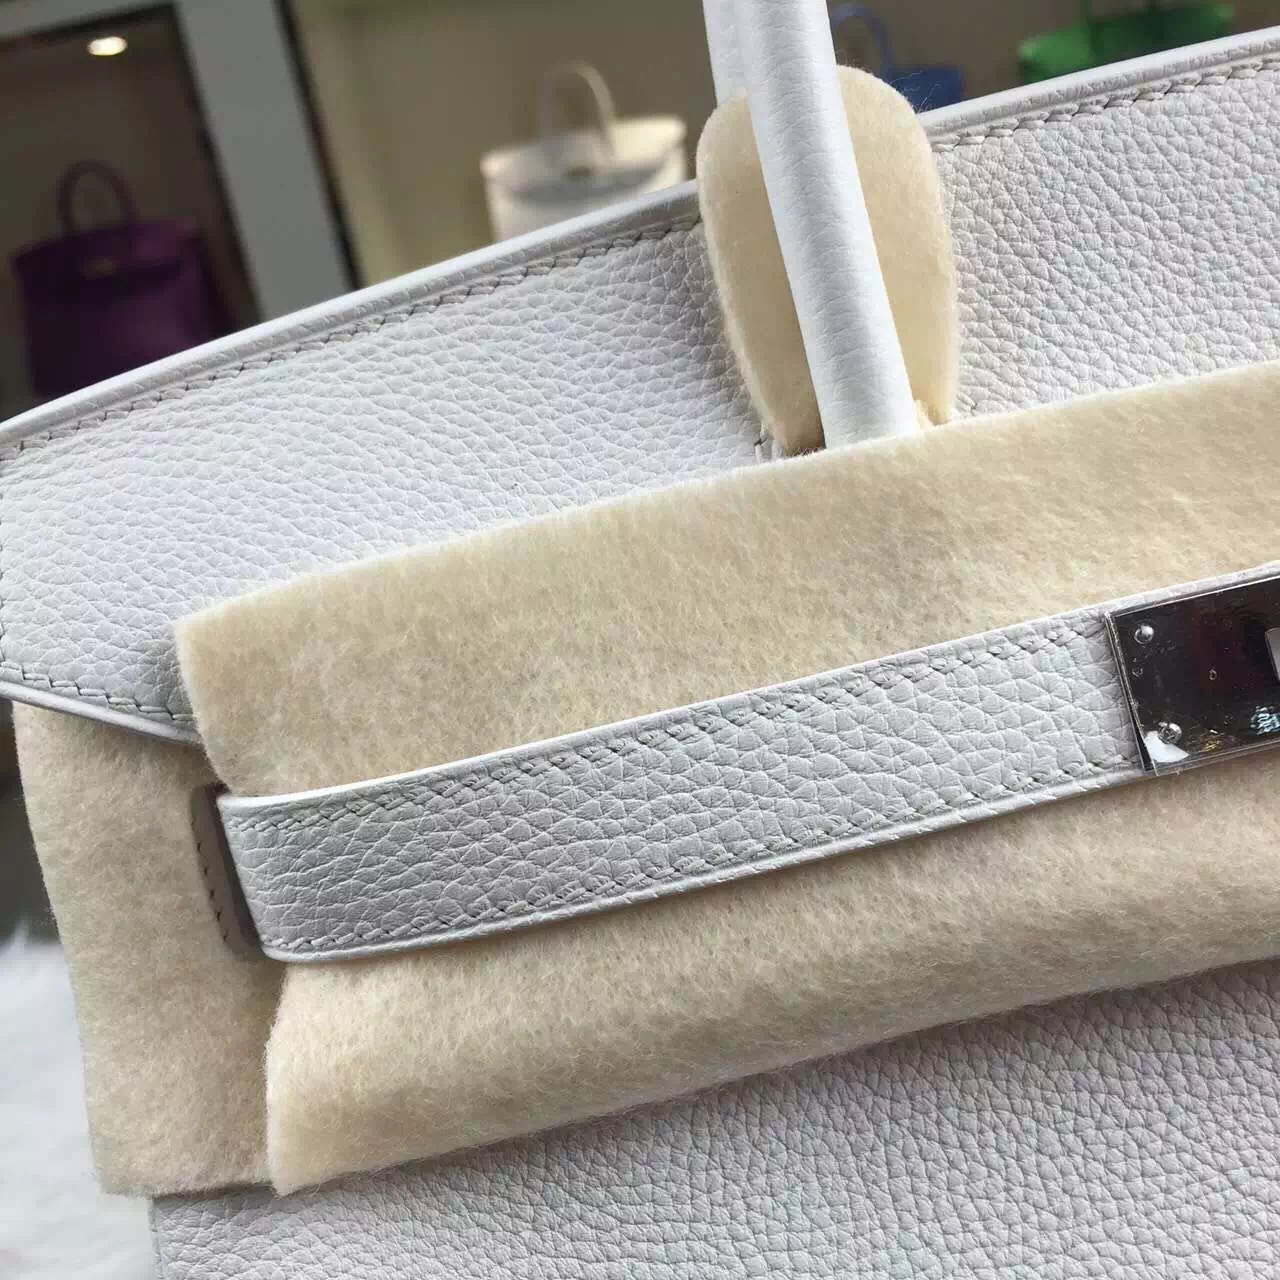 Hermes Birkin 30CM 01 White France Togo Leather Elegant Ladies' Tote Bag